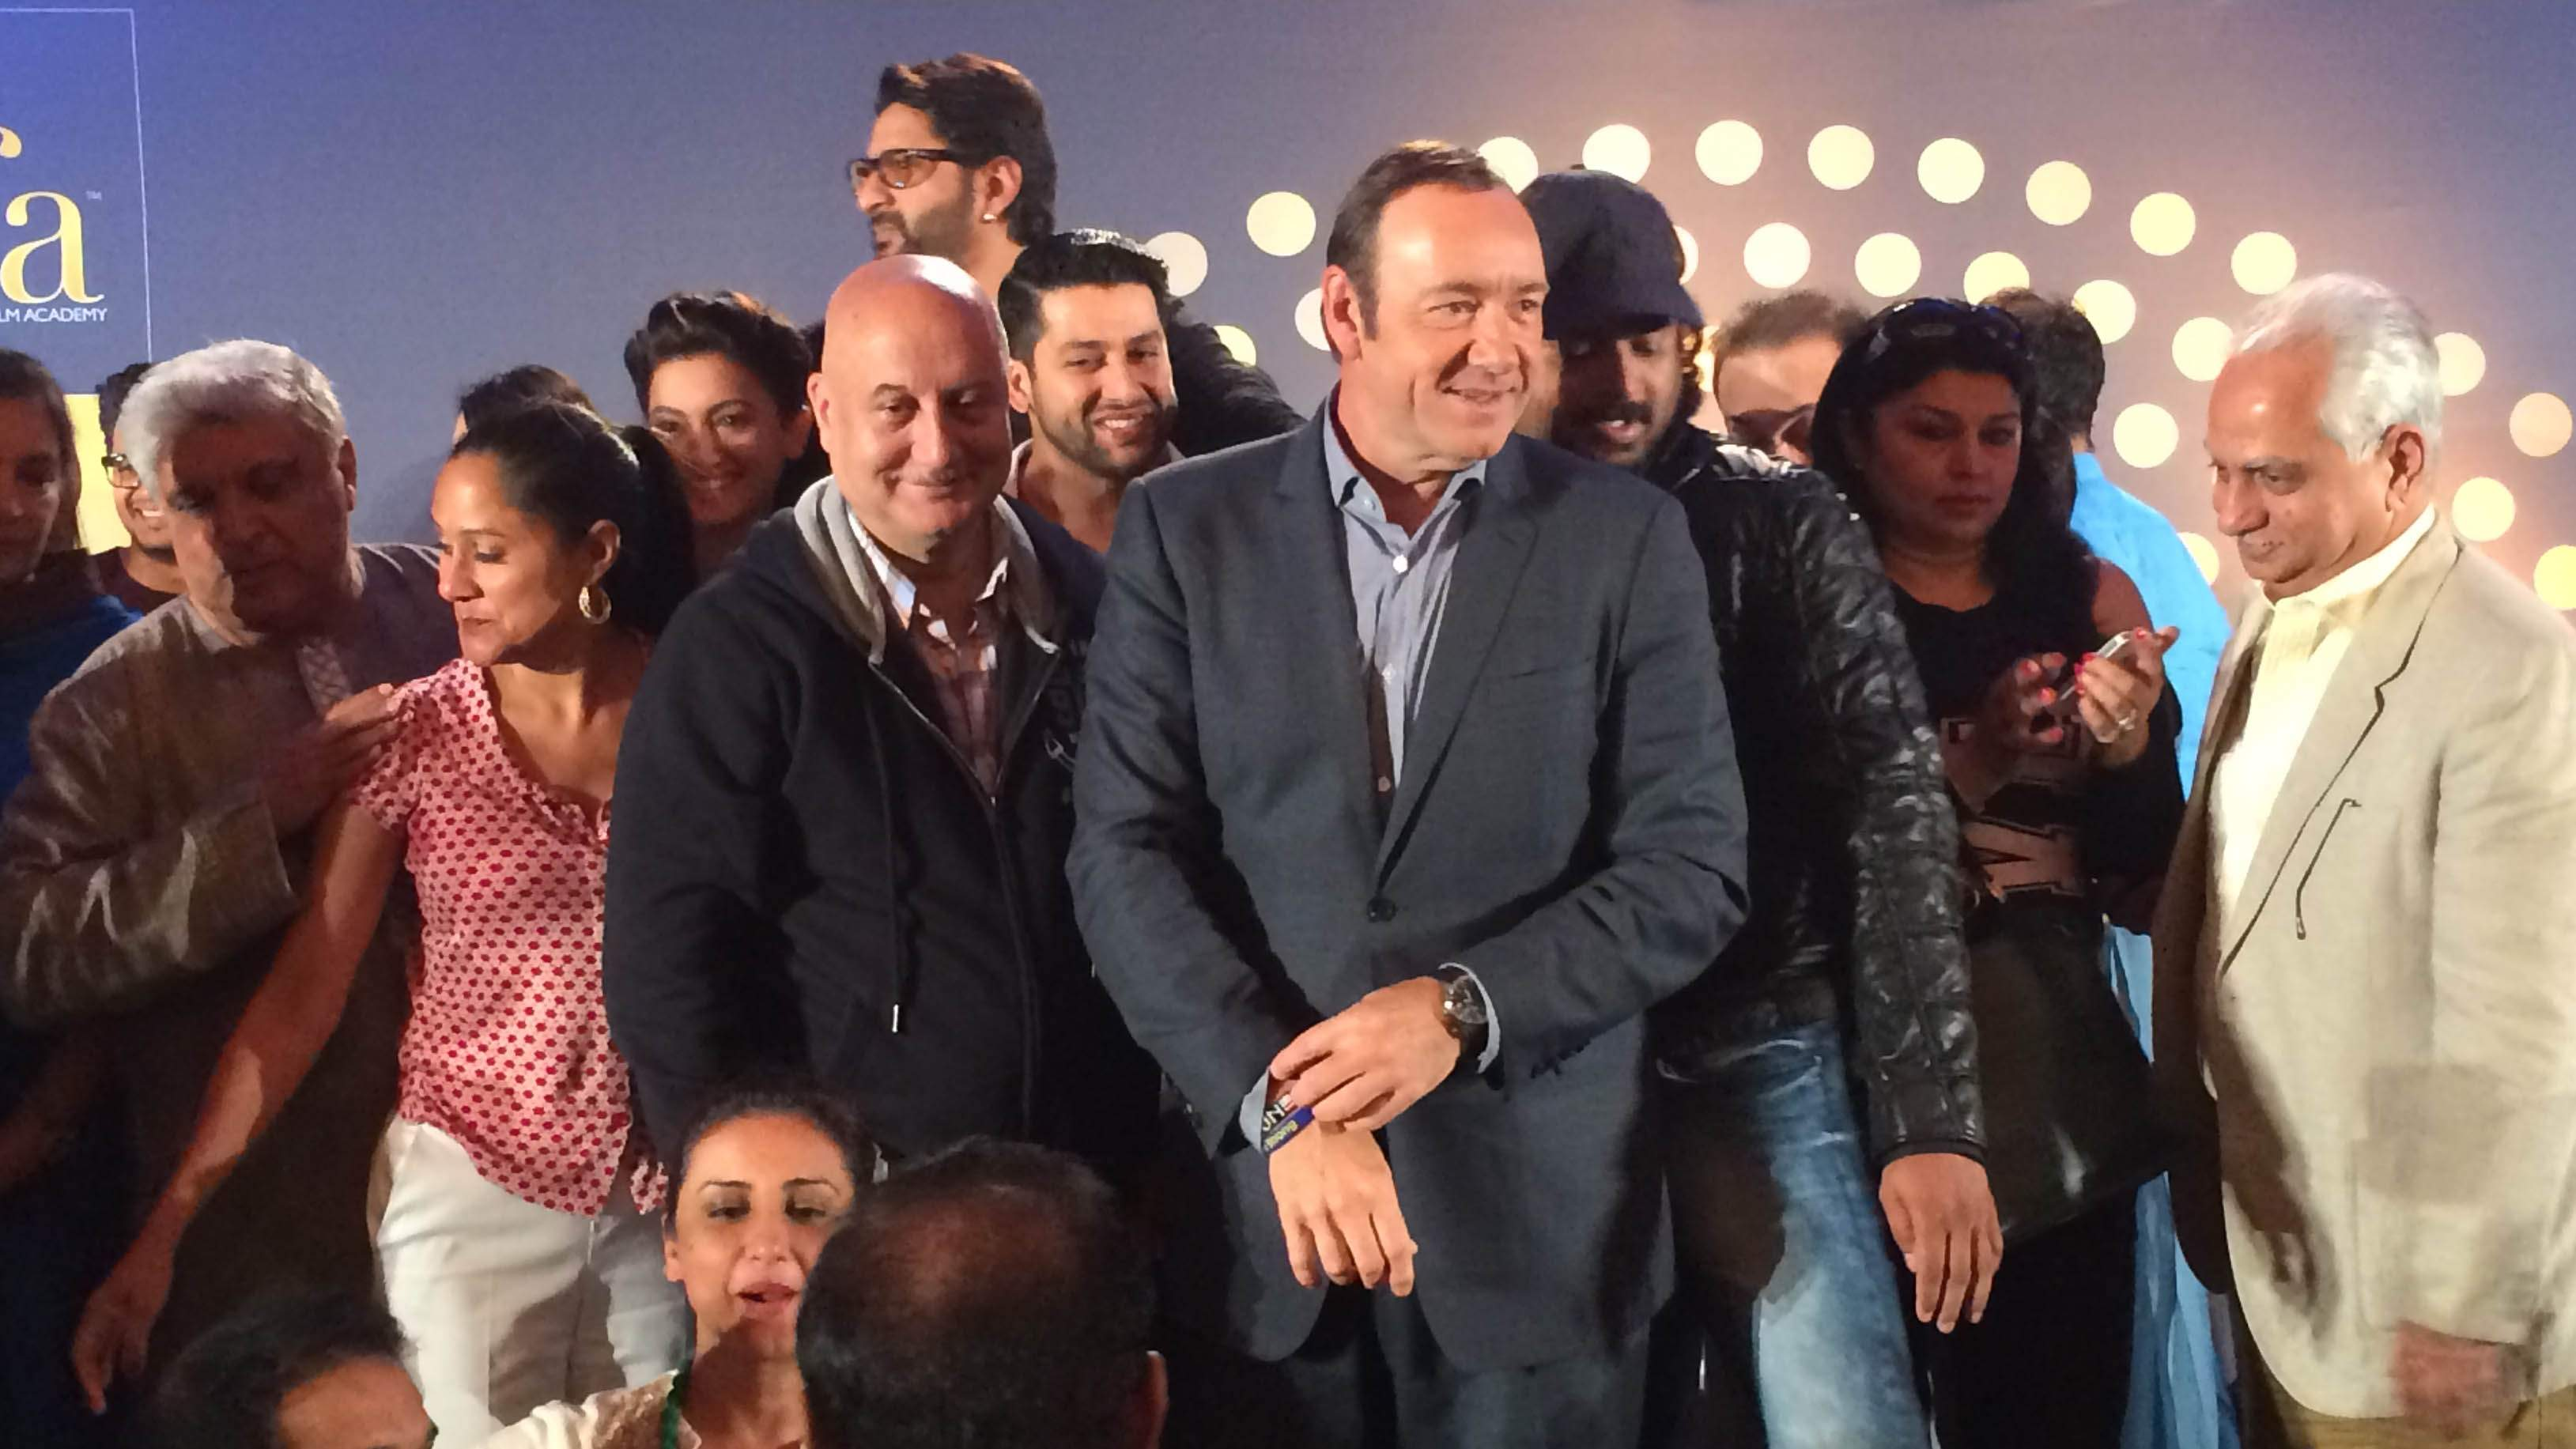 Kevin Spacey at the IFFA 2014.